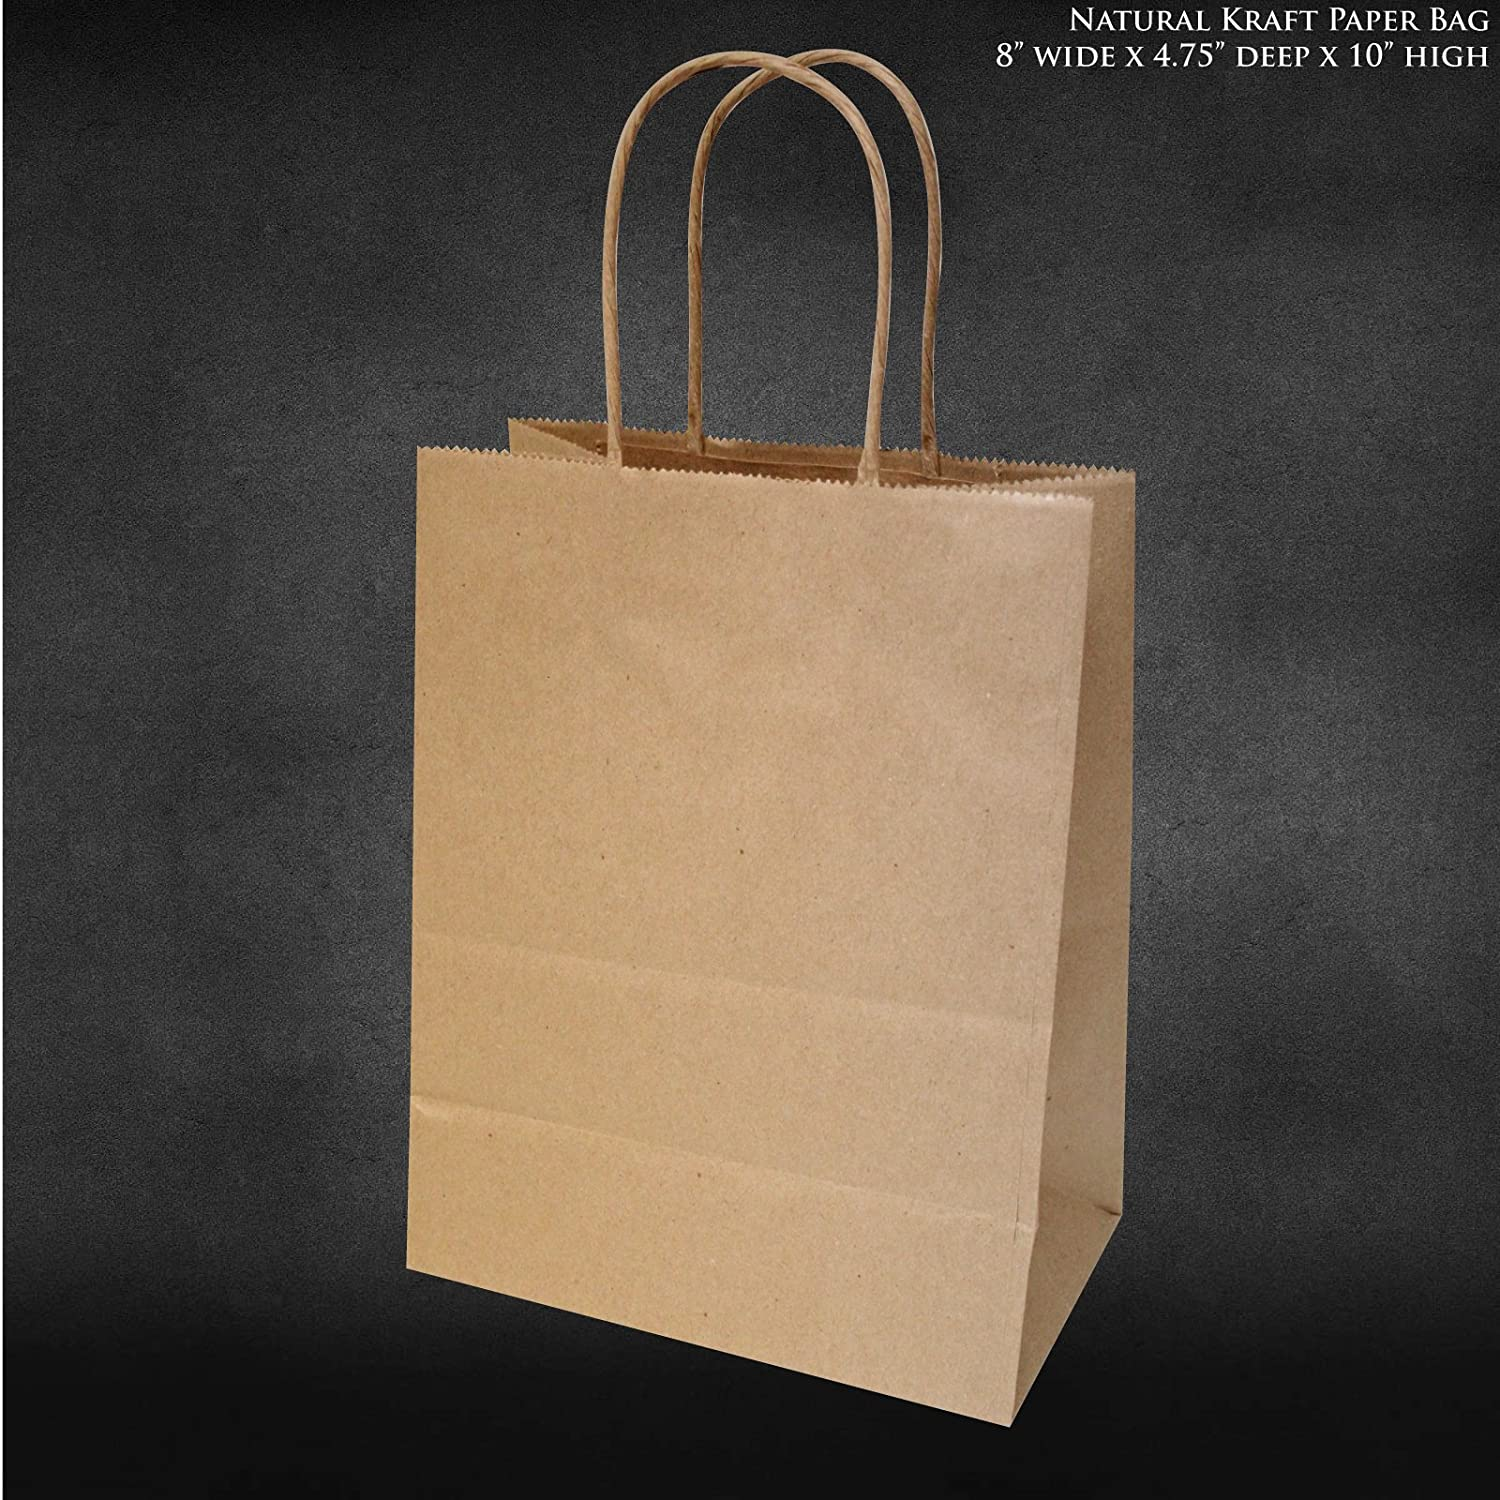 Hobby lobby craft bags - Amazon Com 8 X4 75 X10 50 Pcs Bagsource Brown Kraft Paper Bags Shopping Merchandise Bags Party Bags Gift Bags Retail Bags Craft Bags Brown Bag Natural